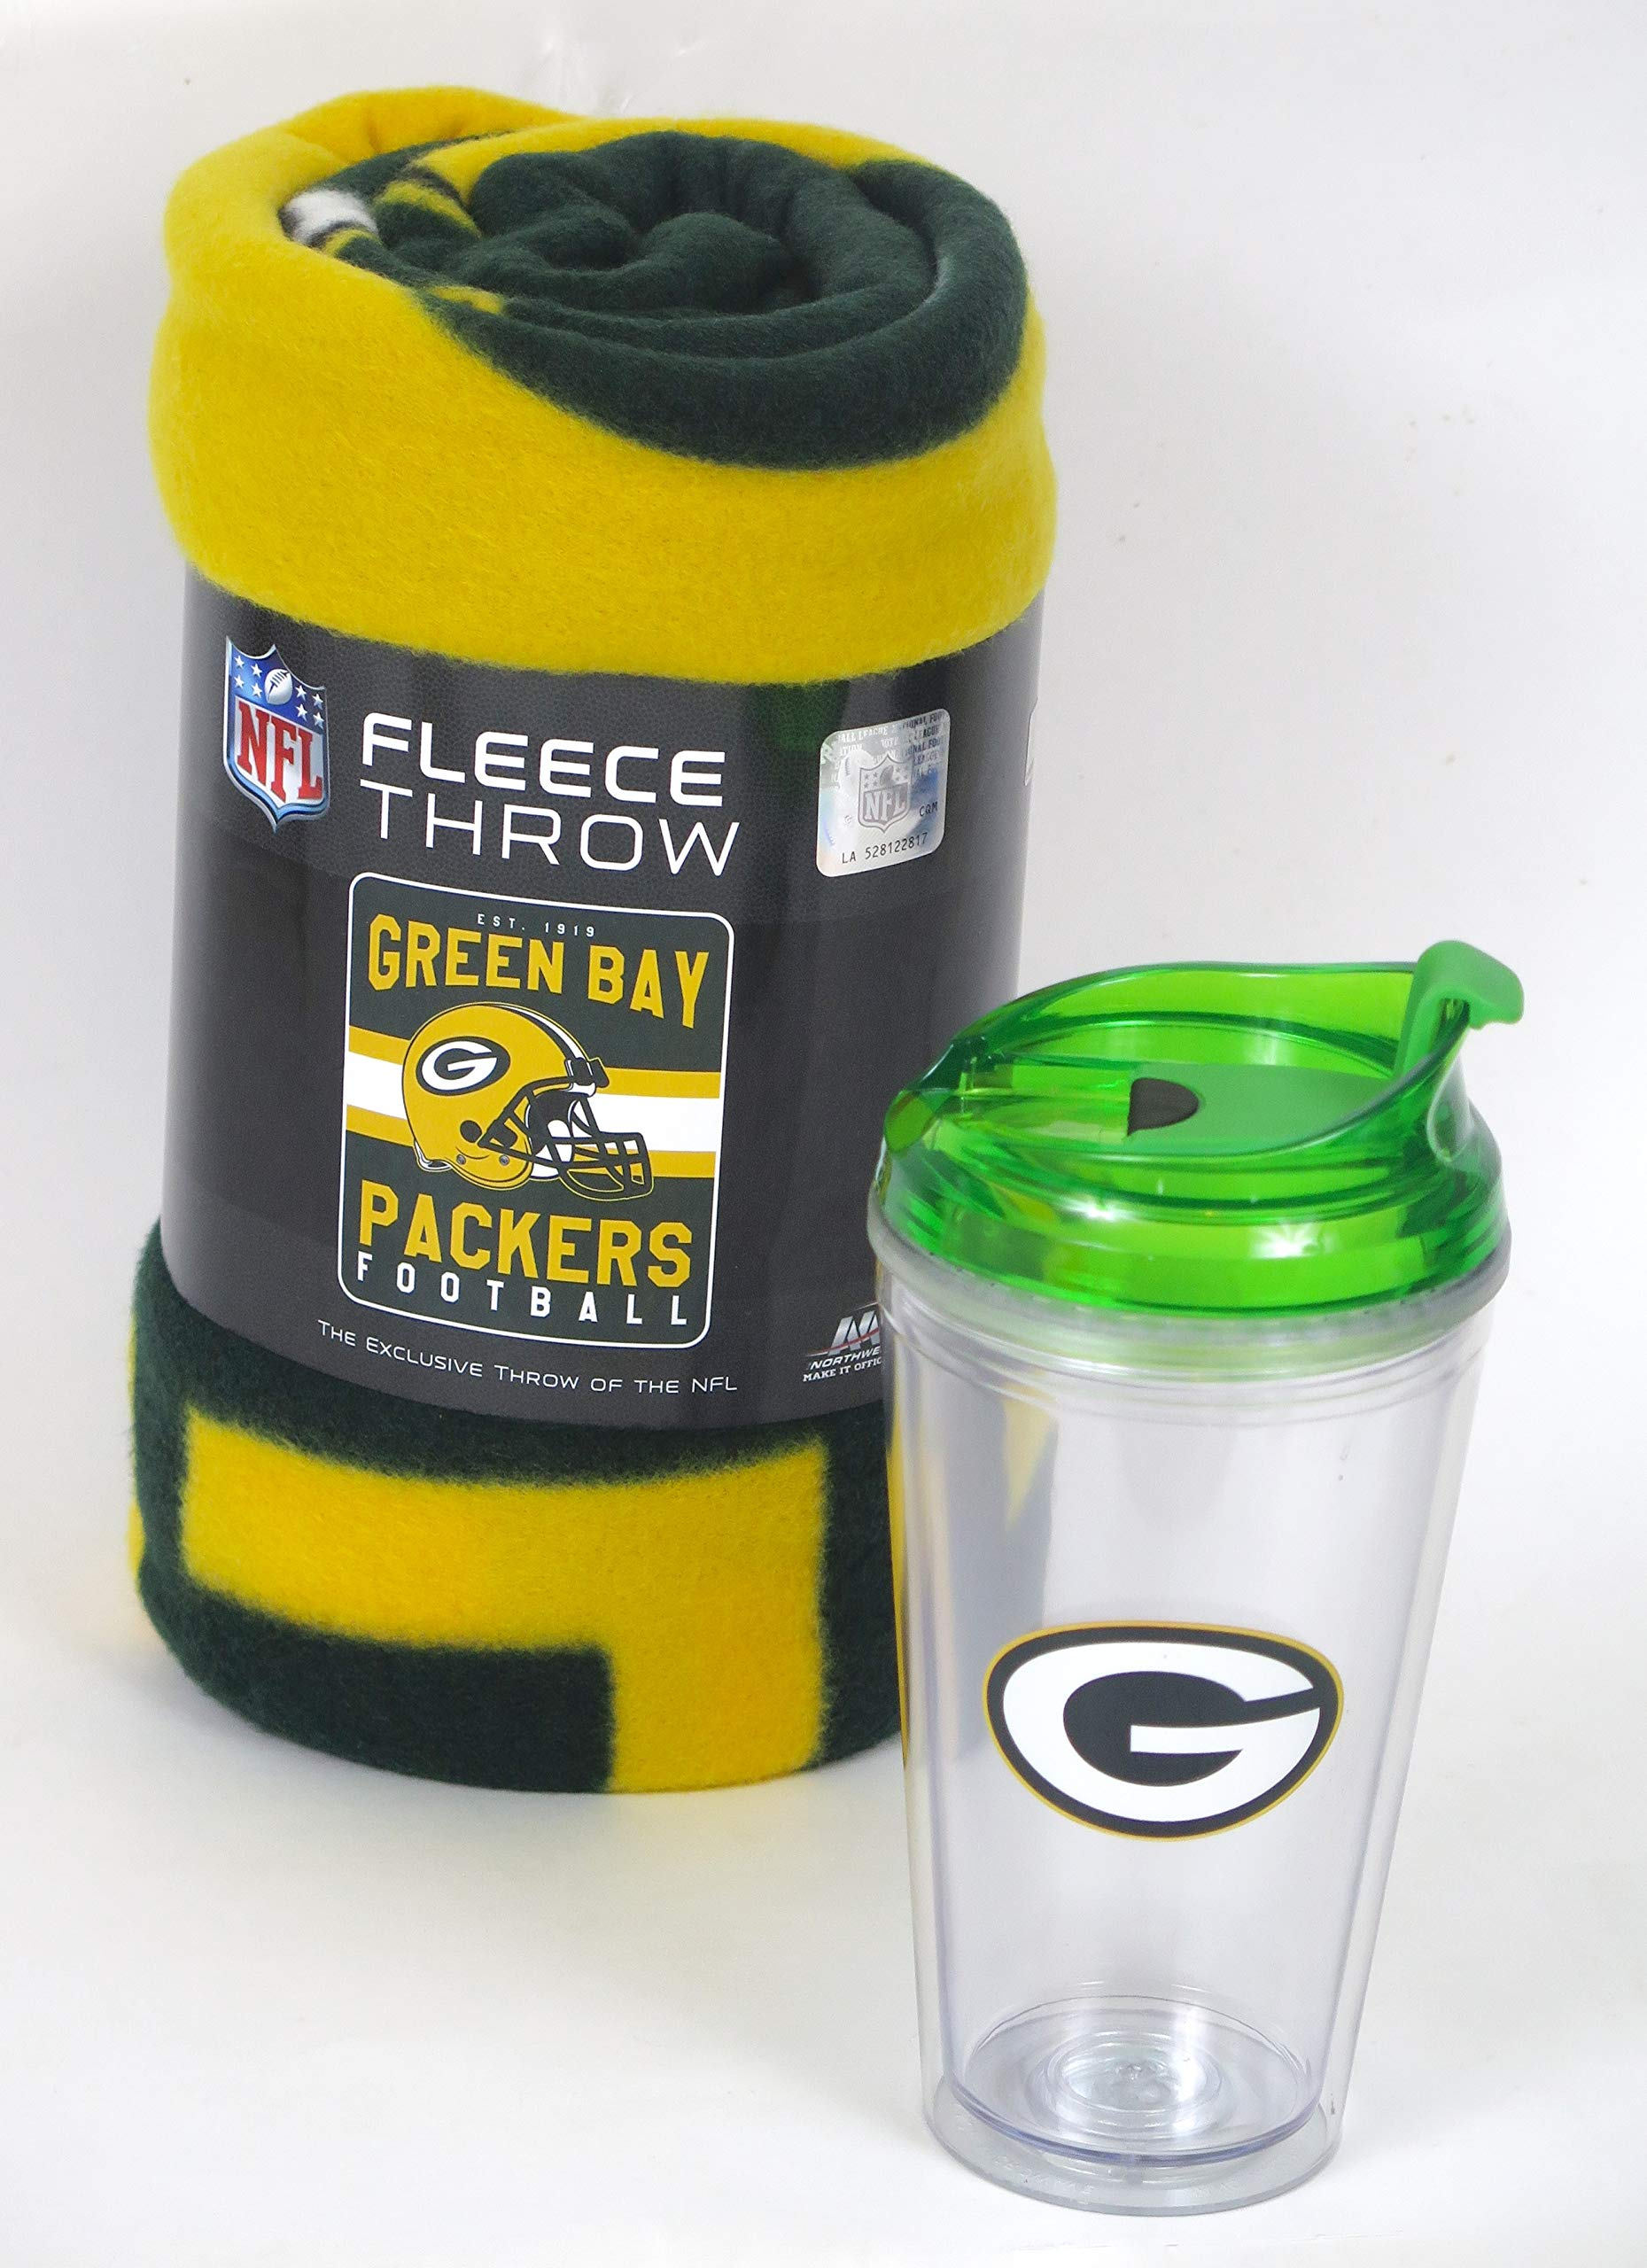 Green Bay Packers blanket and tumbler sip in snob set. this soft fleece throw blanket will keep you warm at the game or ar homeu